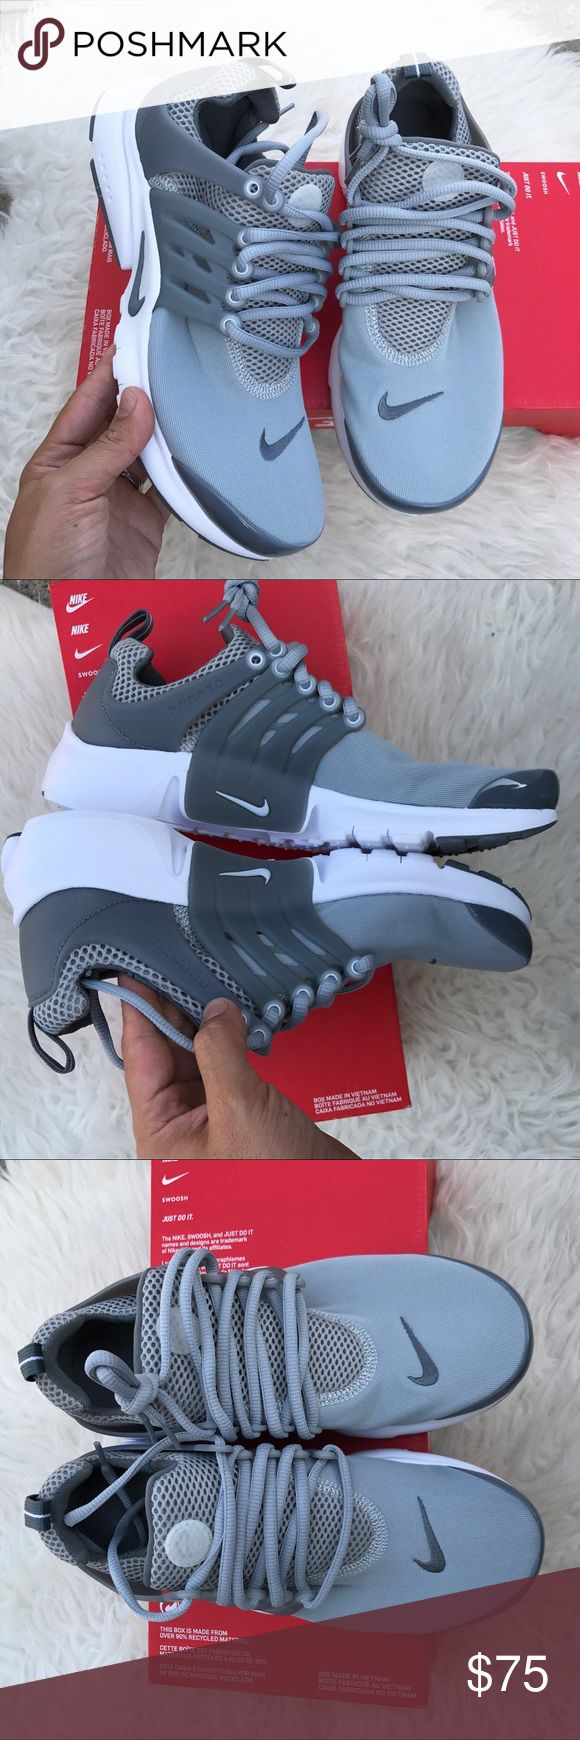 NIKE AUTHENTIC AIR PRESTOS YOUTH Sz 7 women's 8.5 NIKE AUTHENTIC AIR PRESTOS YOUTH Sz 7 women's 8.5 NEW BOX IS MISSING LID 100% authentic! Please look at Nike conversion size chart to figure out your youth to women size! Itemcloset#cuafo-treocho Nike Shoes